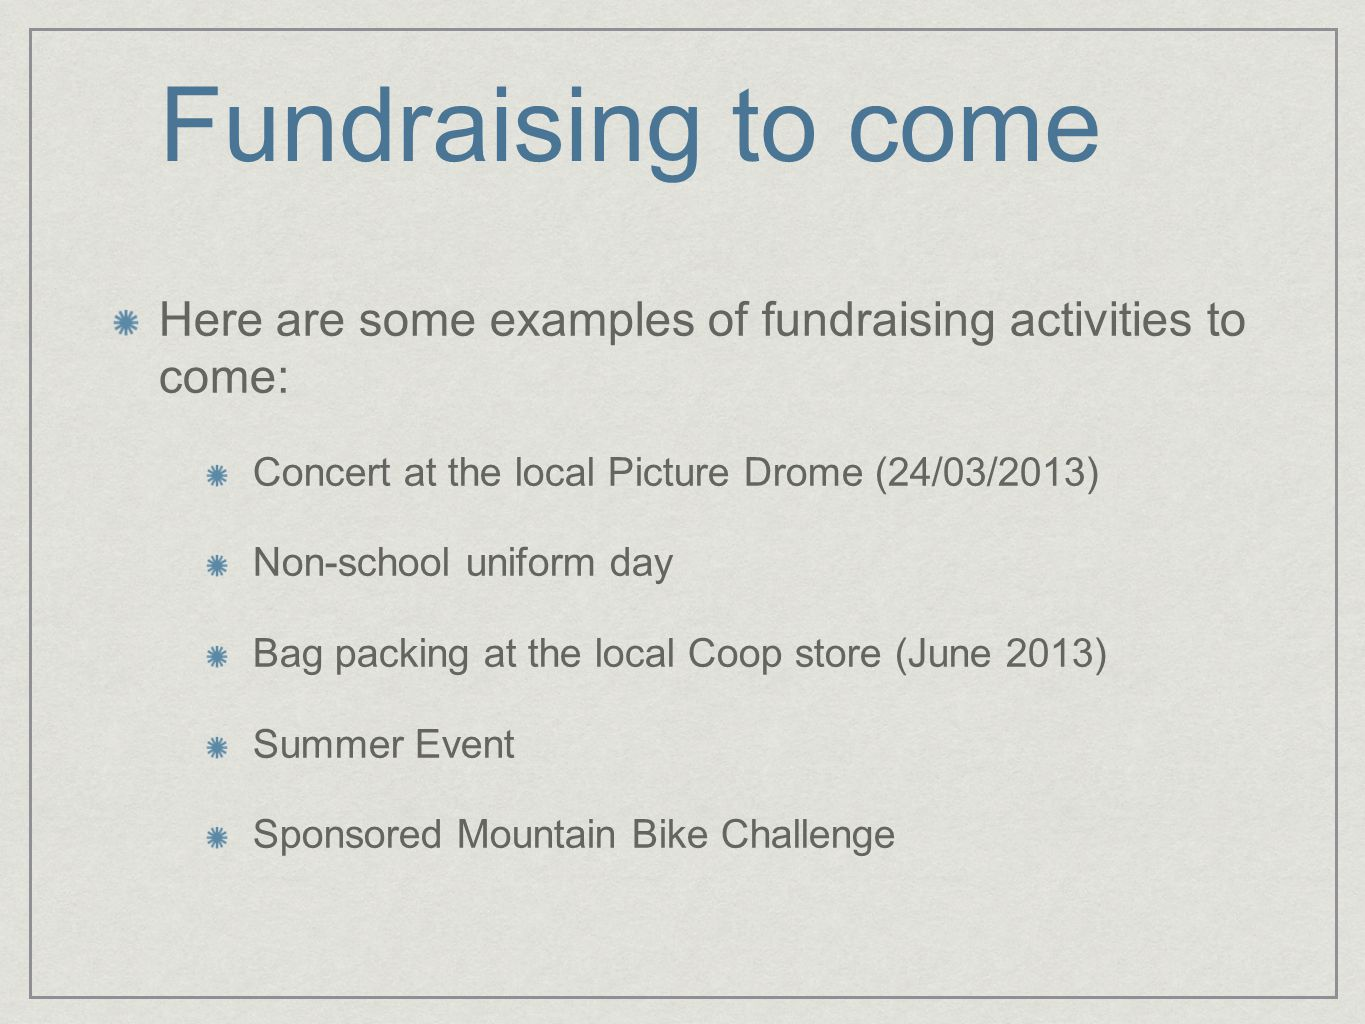 Fundraising to come Here are some examples of fundraising activities to come: Concert at the local Picture Drome (24/03/2013) Non-school uniform day Bag packing at the local Coop store (June 2013) Summer Event Sponsored Mountain Bike Challenge